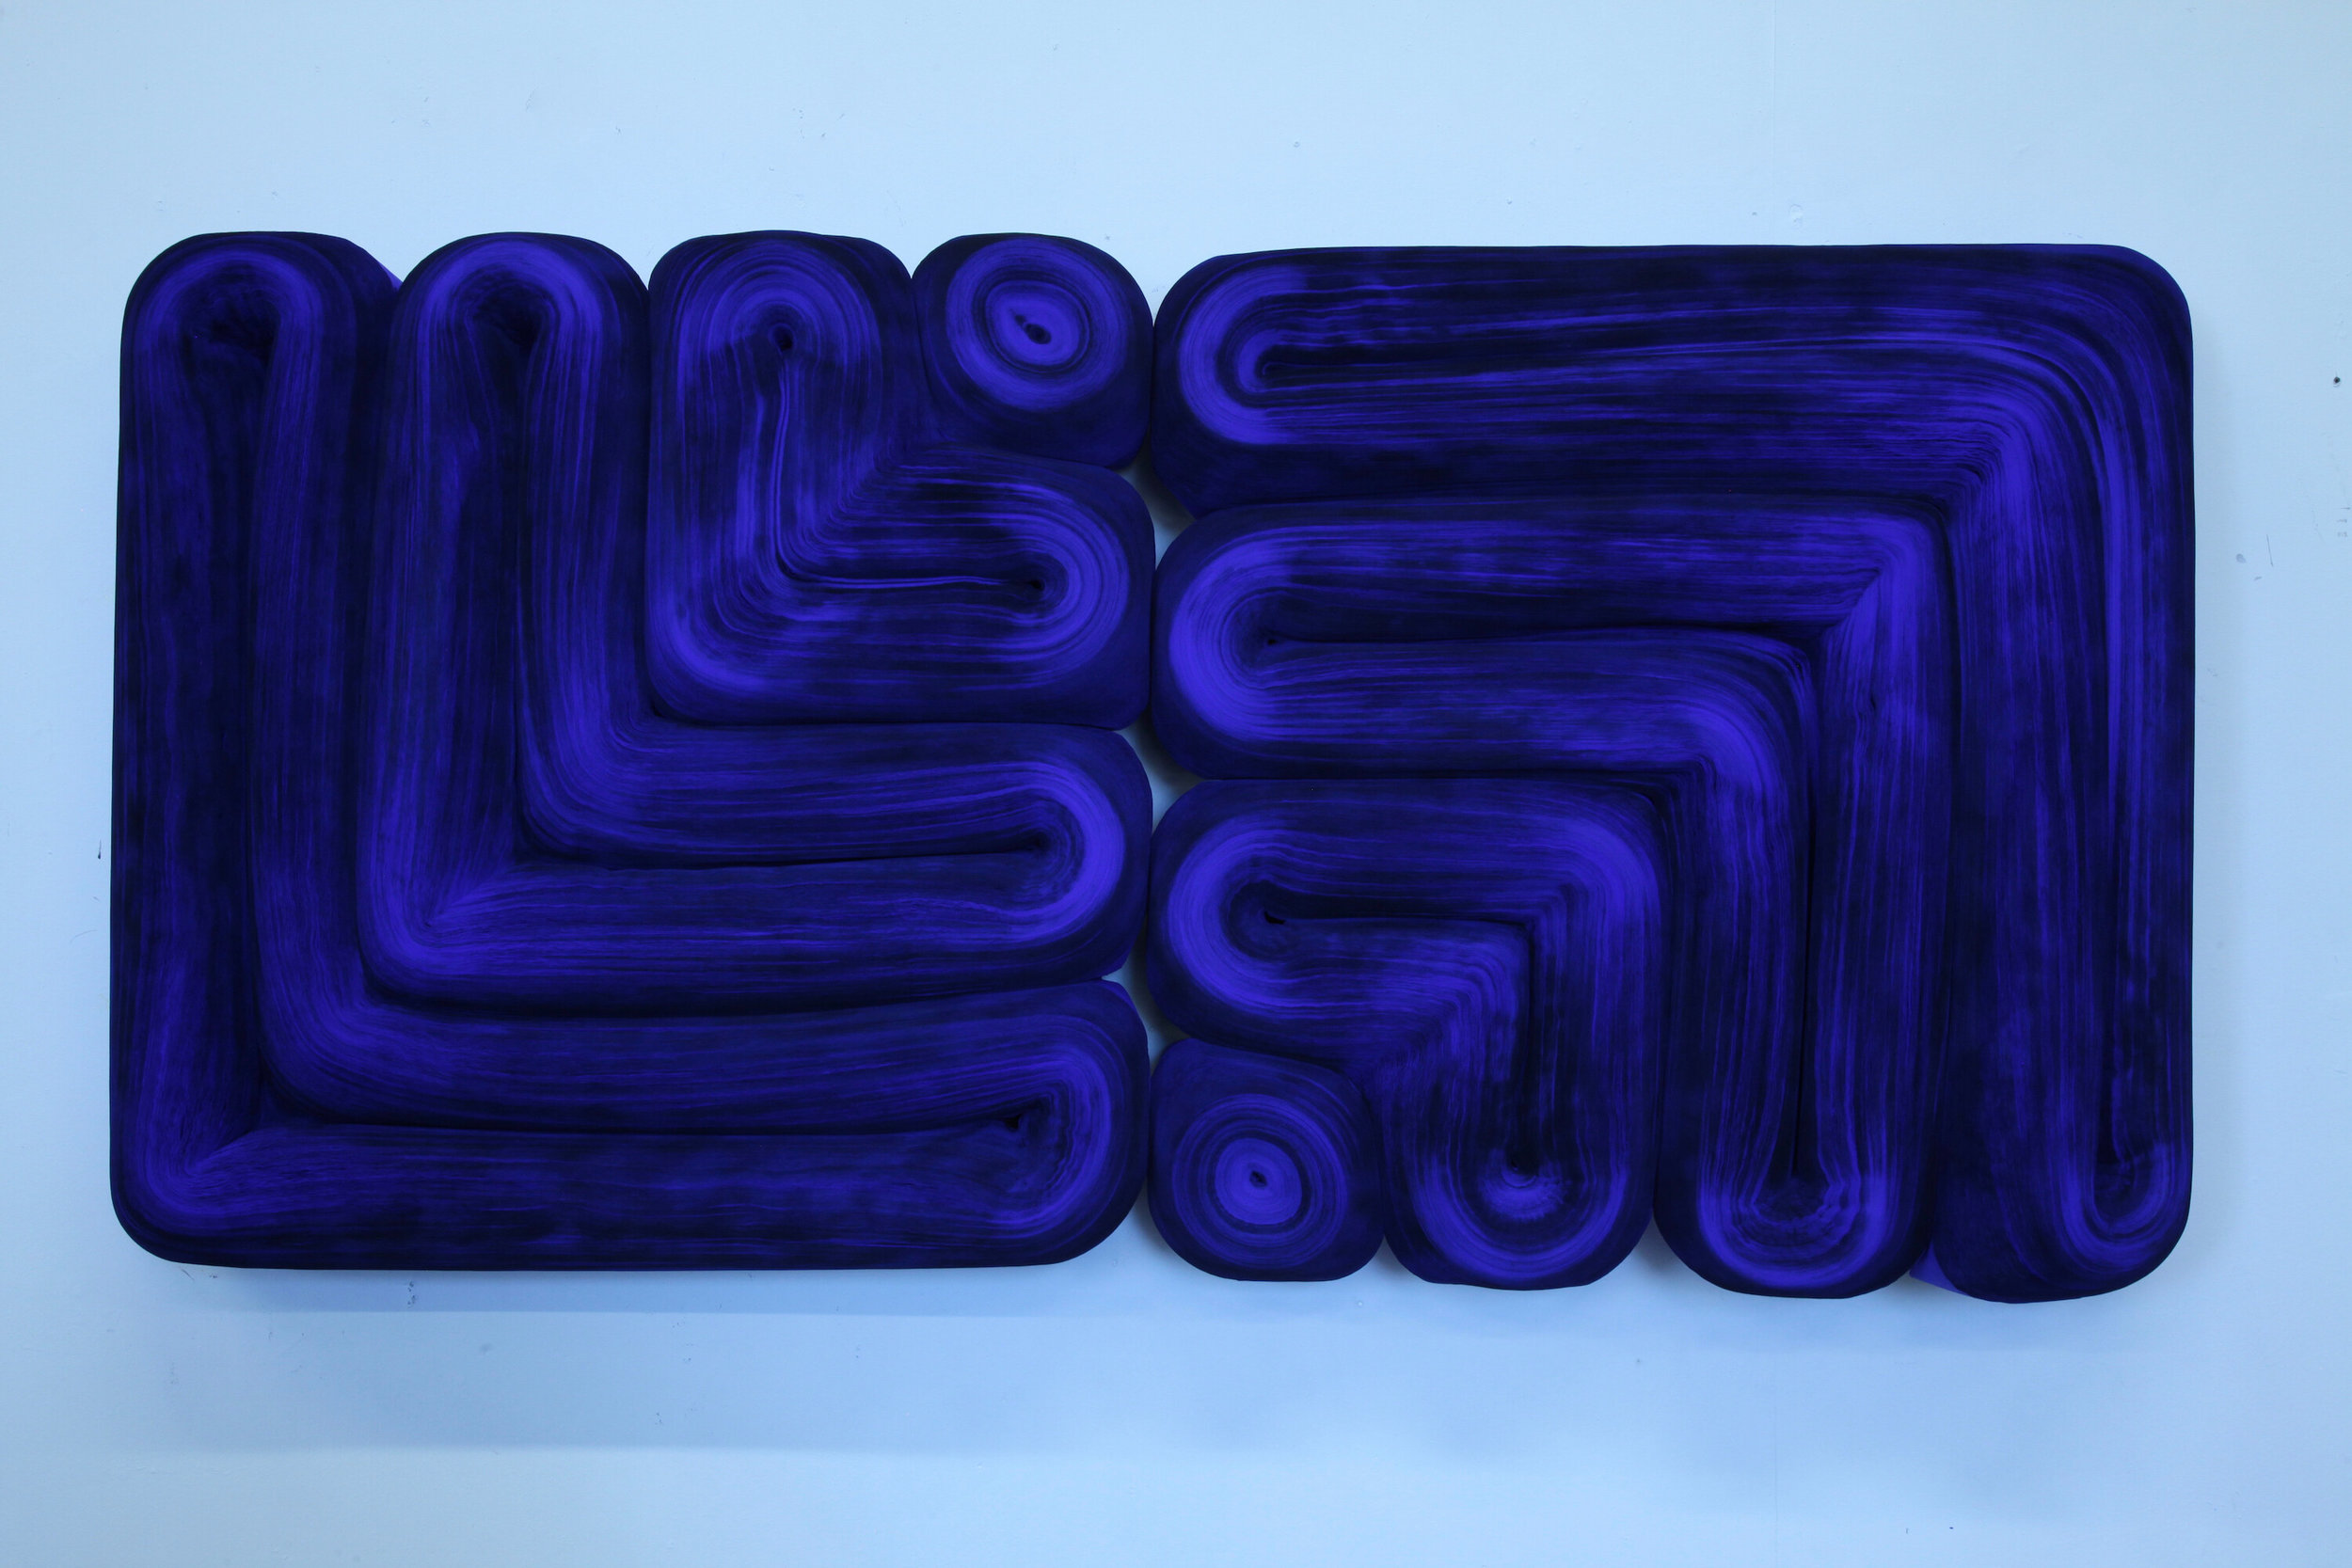 JK491 Ultramarine Blue , Rolled paper, colored ink and glue, 24 x 48 x 7 inches